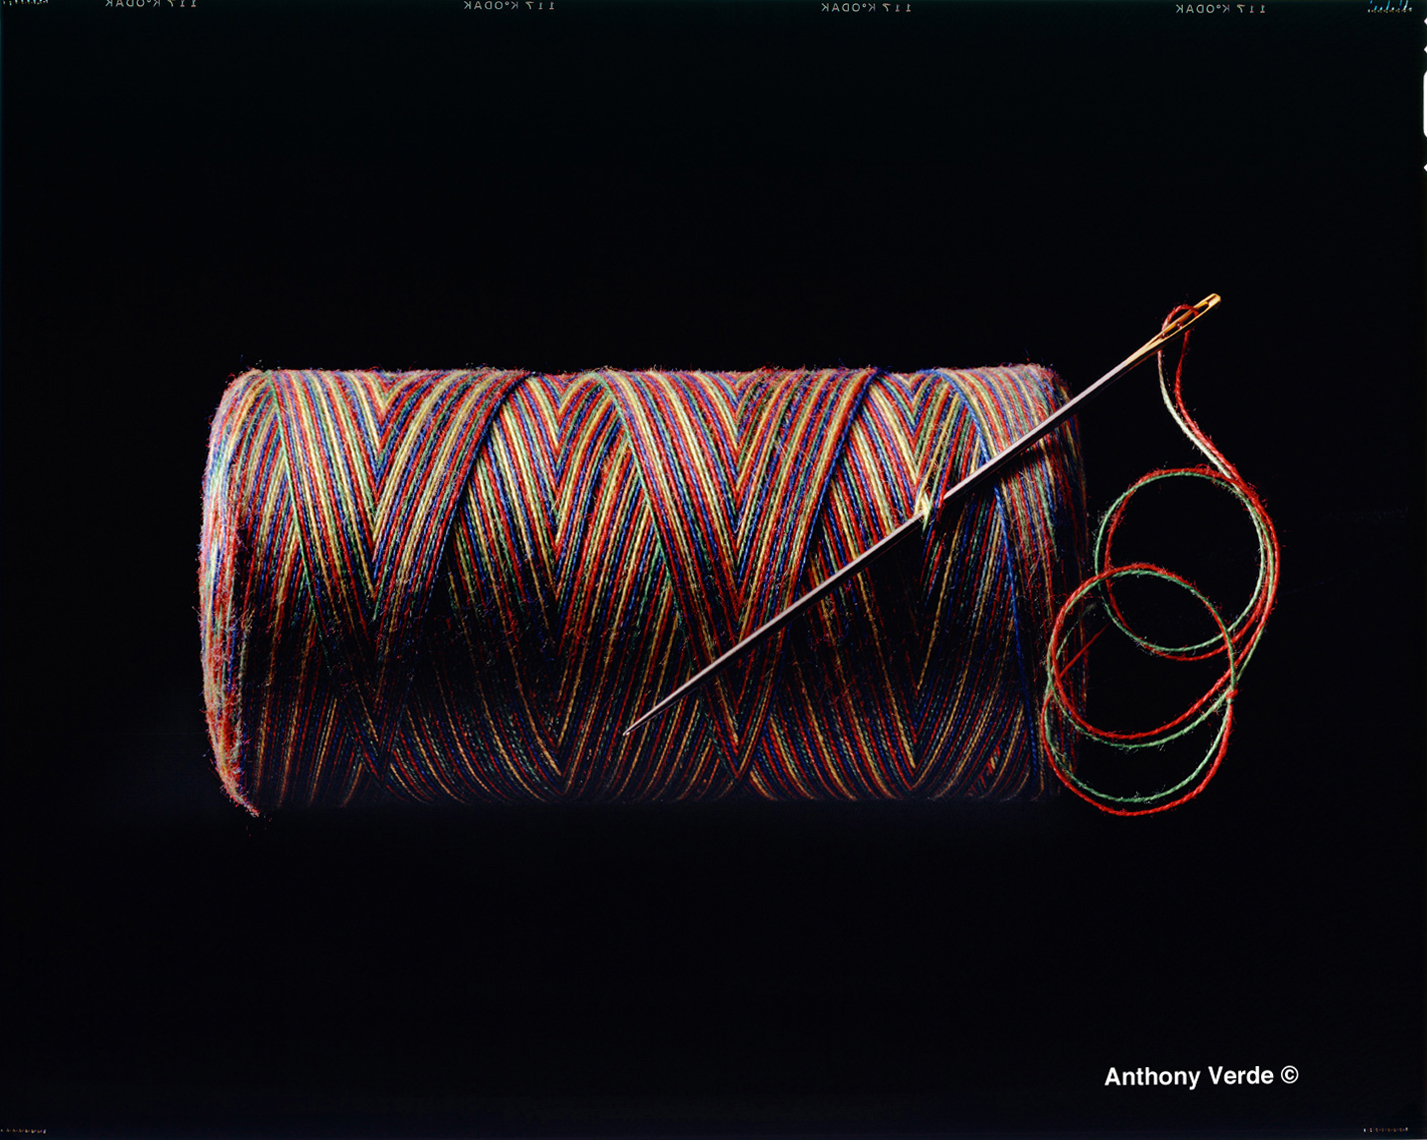 thread-spool-multicolor-still-life-photography